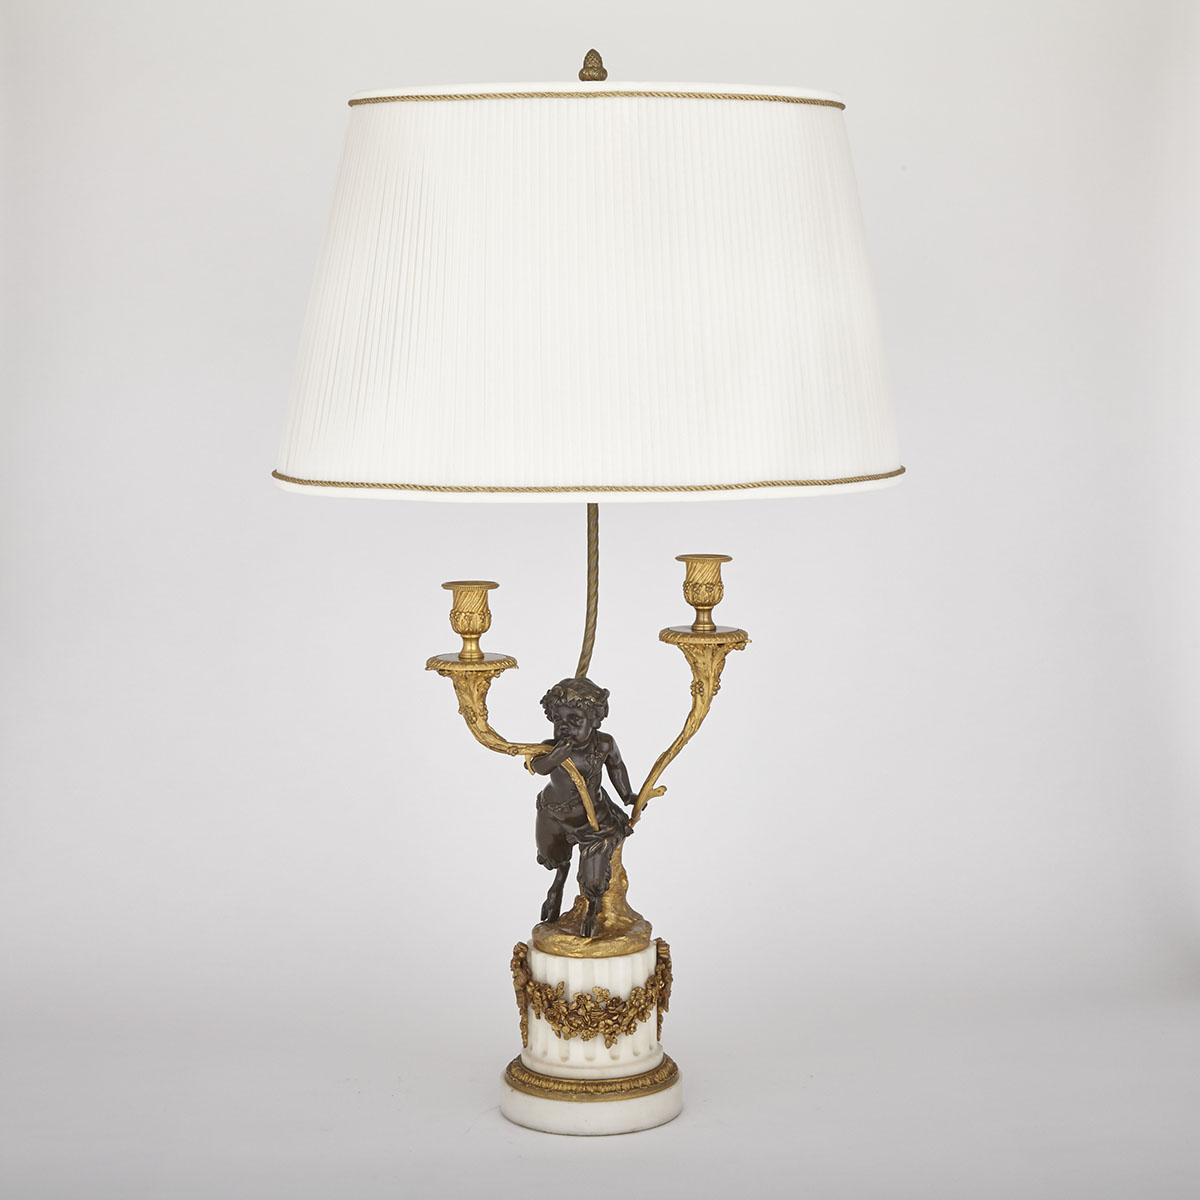 French Gilt and Patinated Bronze Figural Candelabra Form Table Lamp, early 20th century